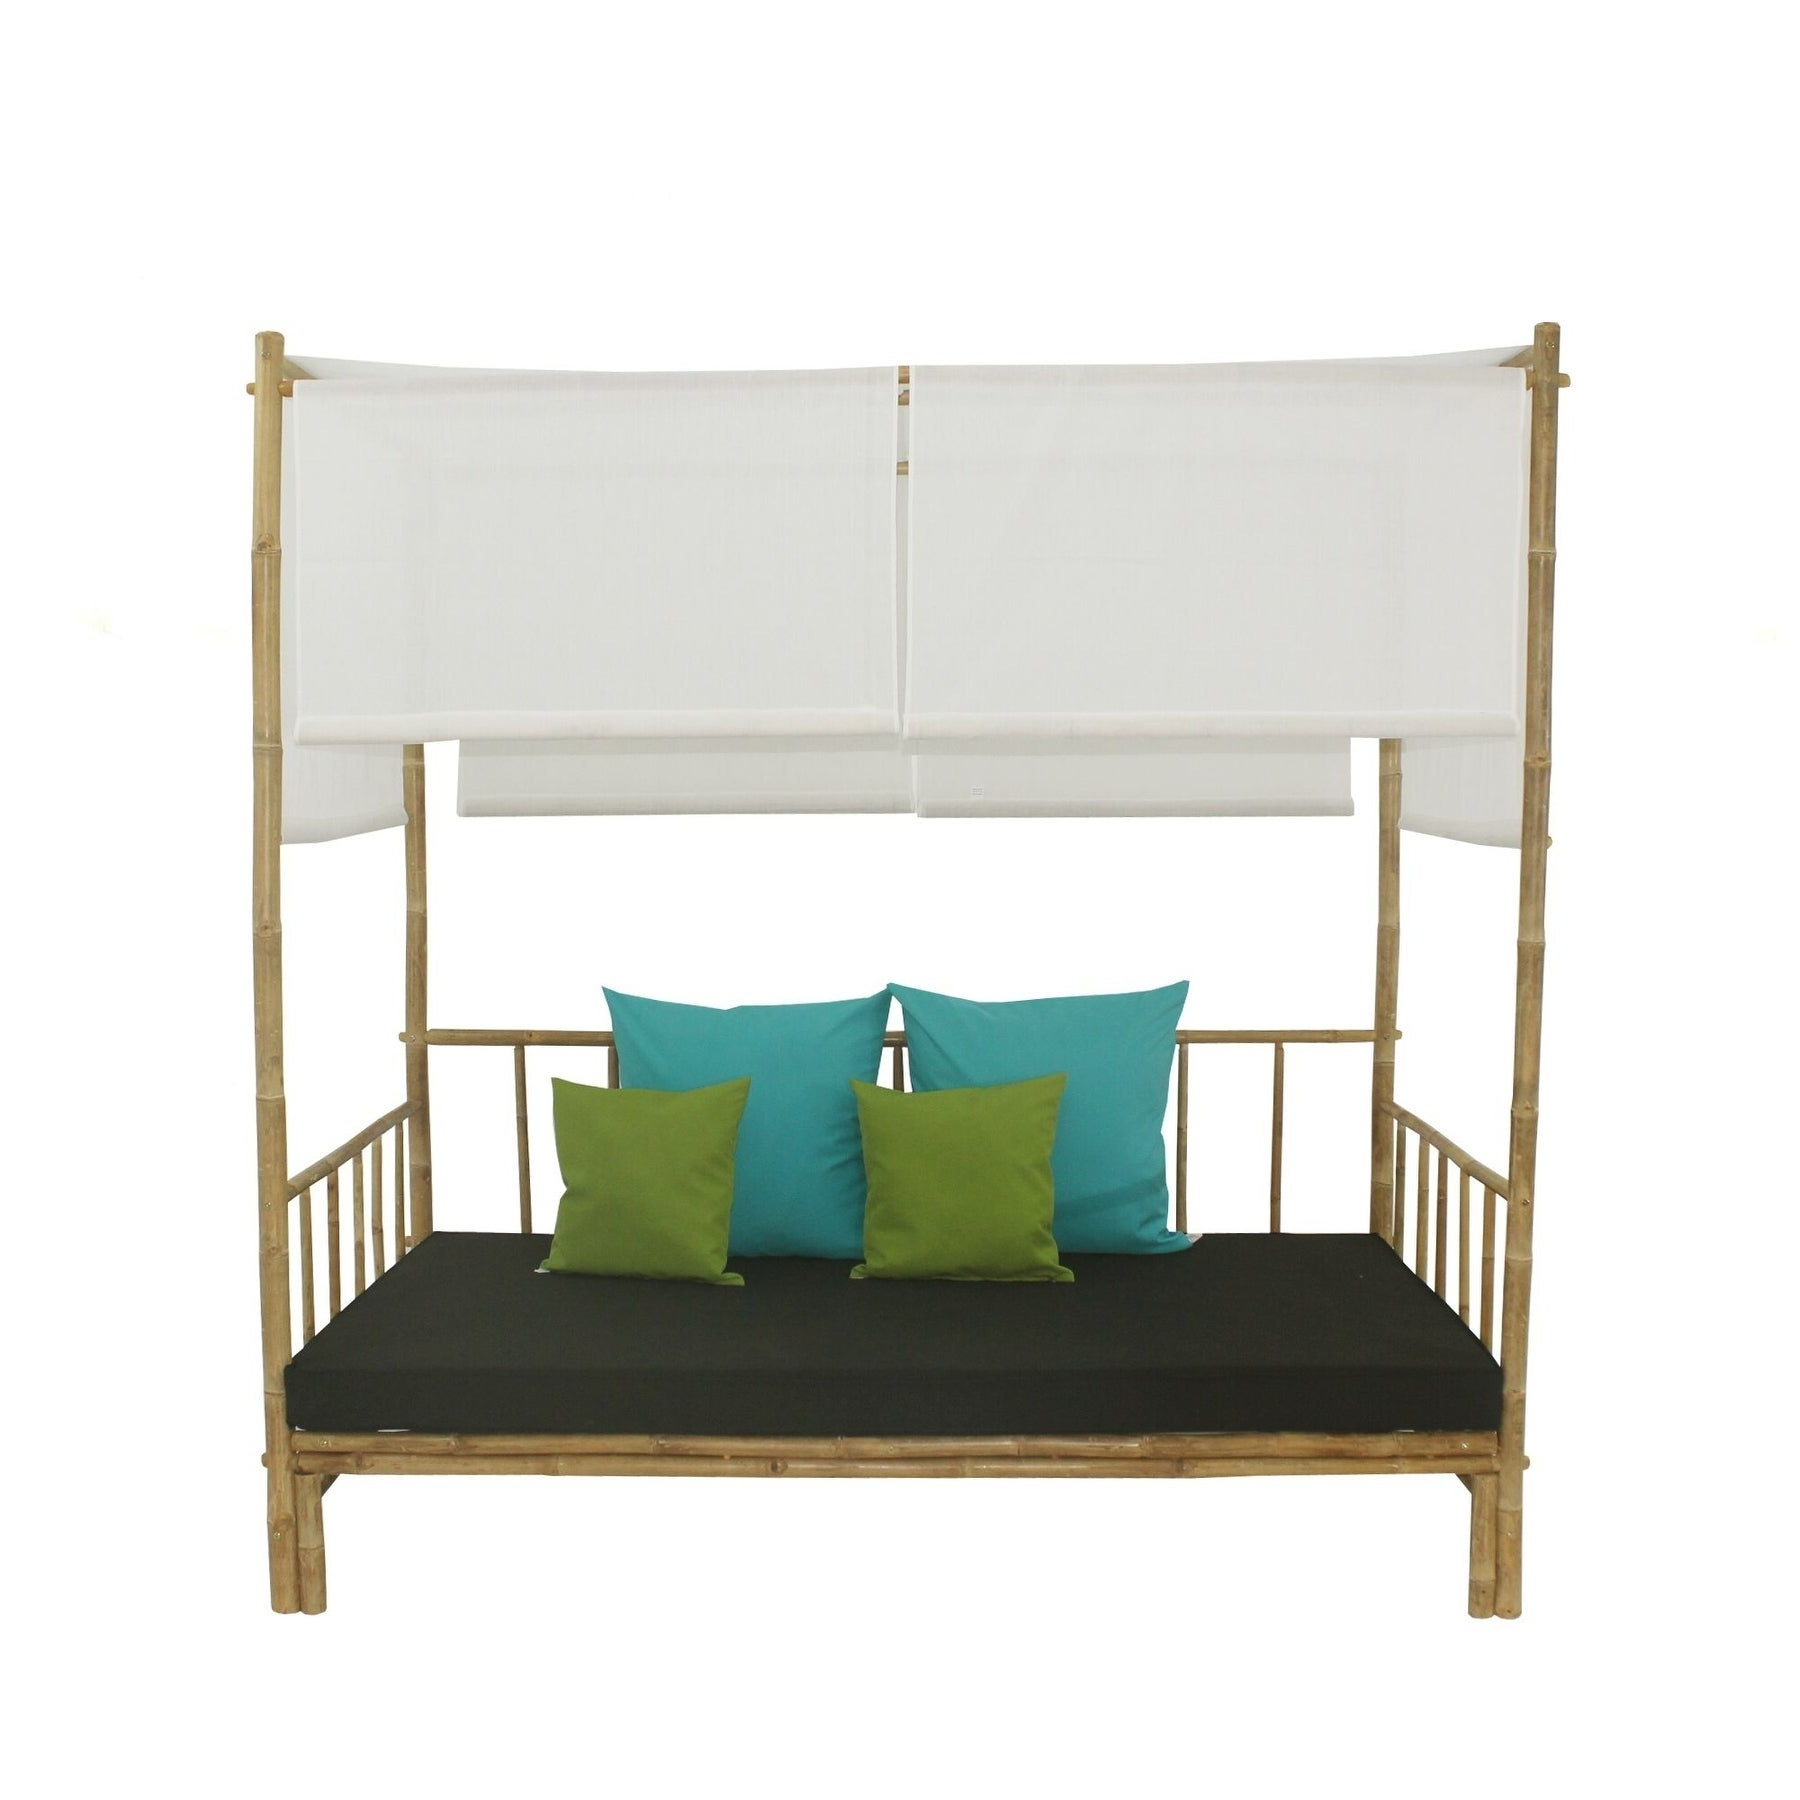 Preferred Bamboo Daybed With Canopy Within Bamboo Daybeds With Canopy (View 5 of 25)